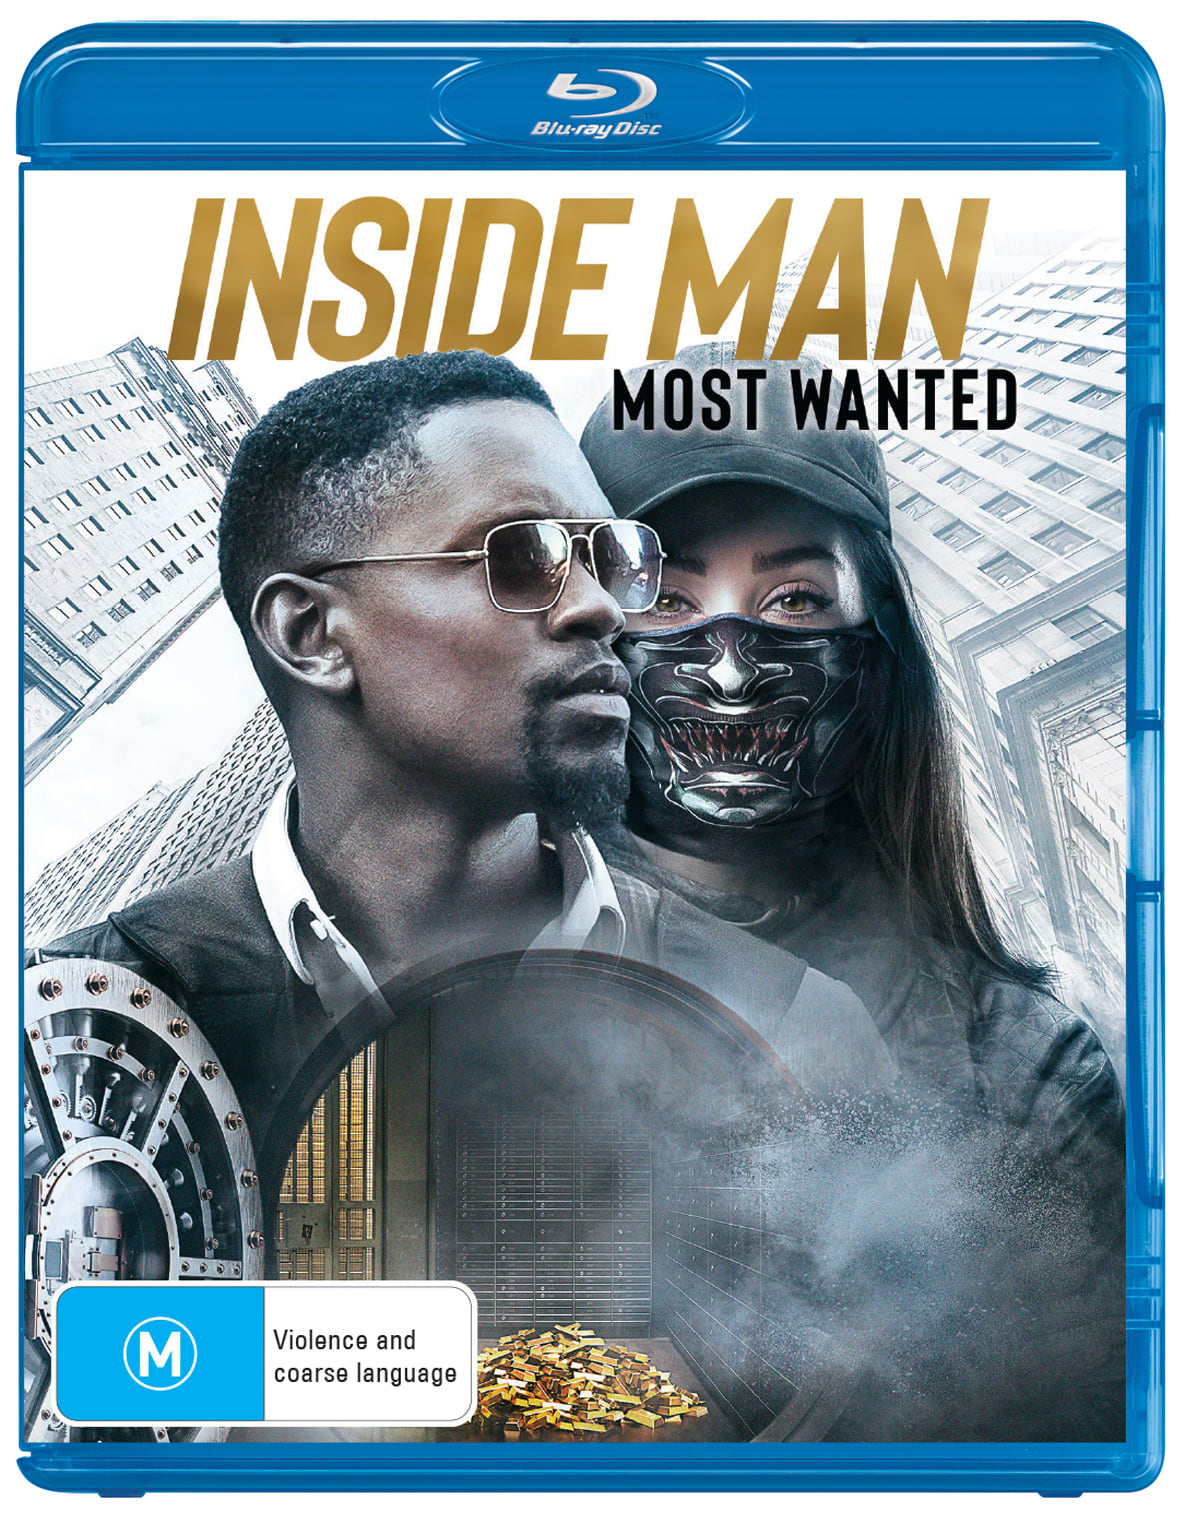 Inside Man - Most Wanted [Blu-ray]